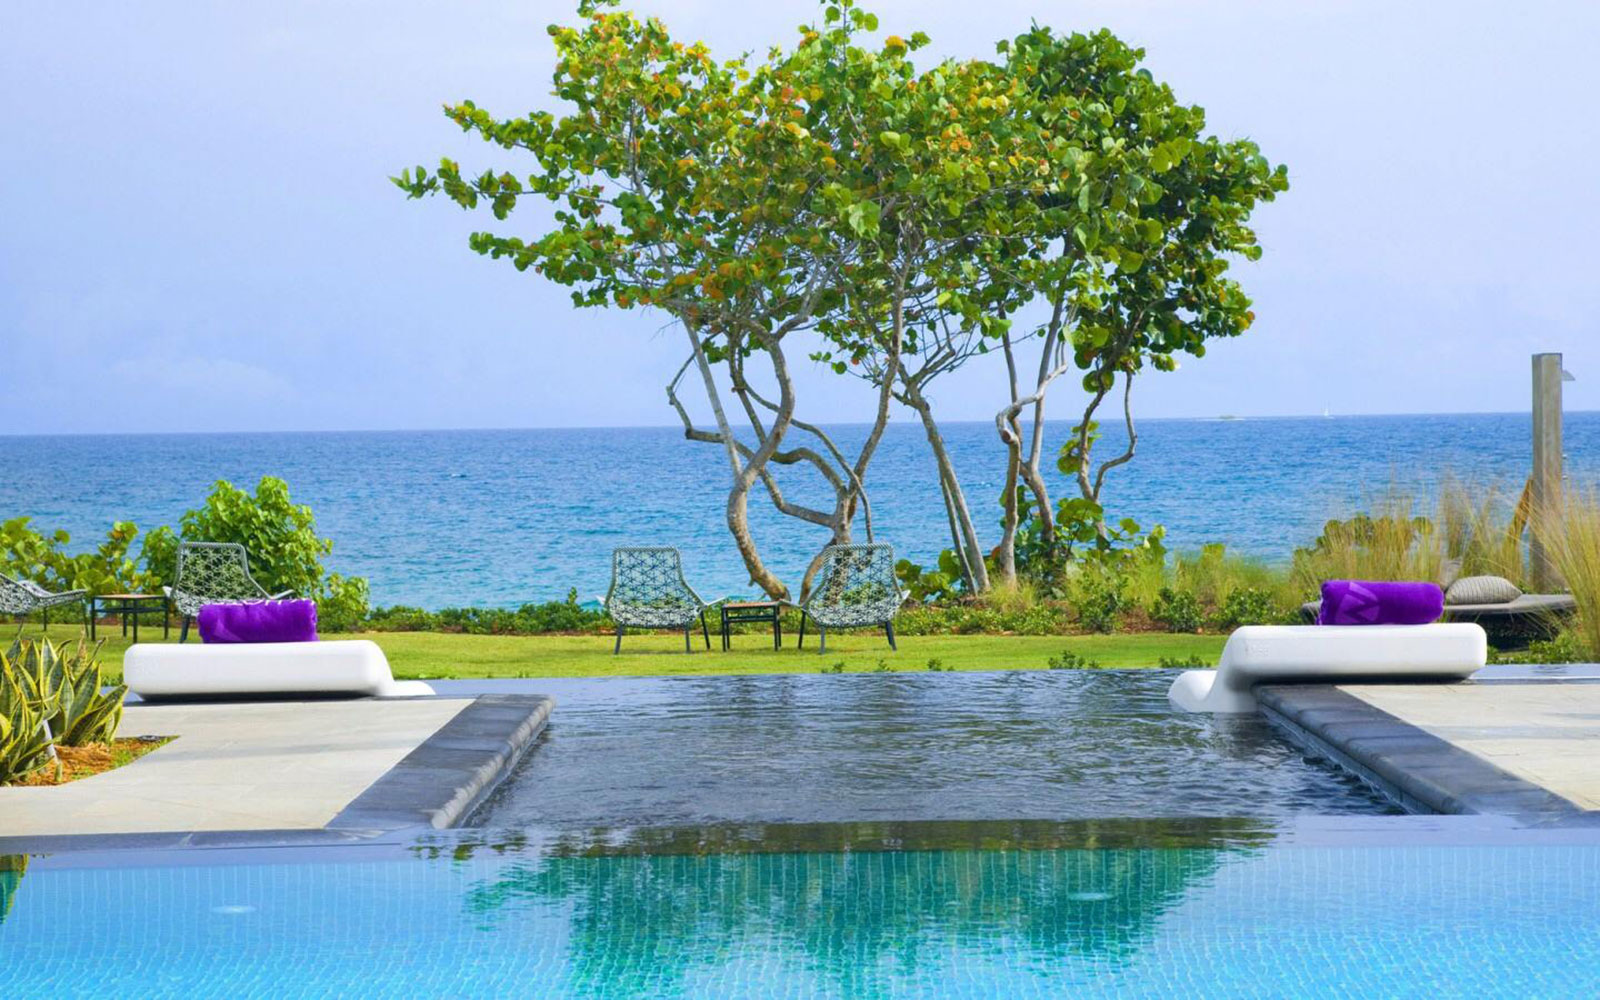 Nine Perfect Places For Your LGBT Destination Wedding: Vieques, Puerto Rico